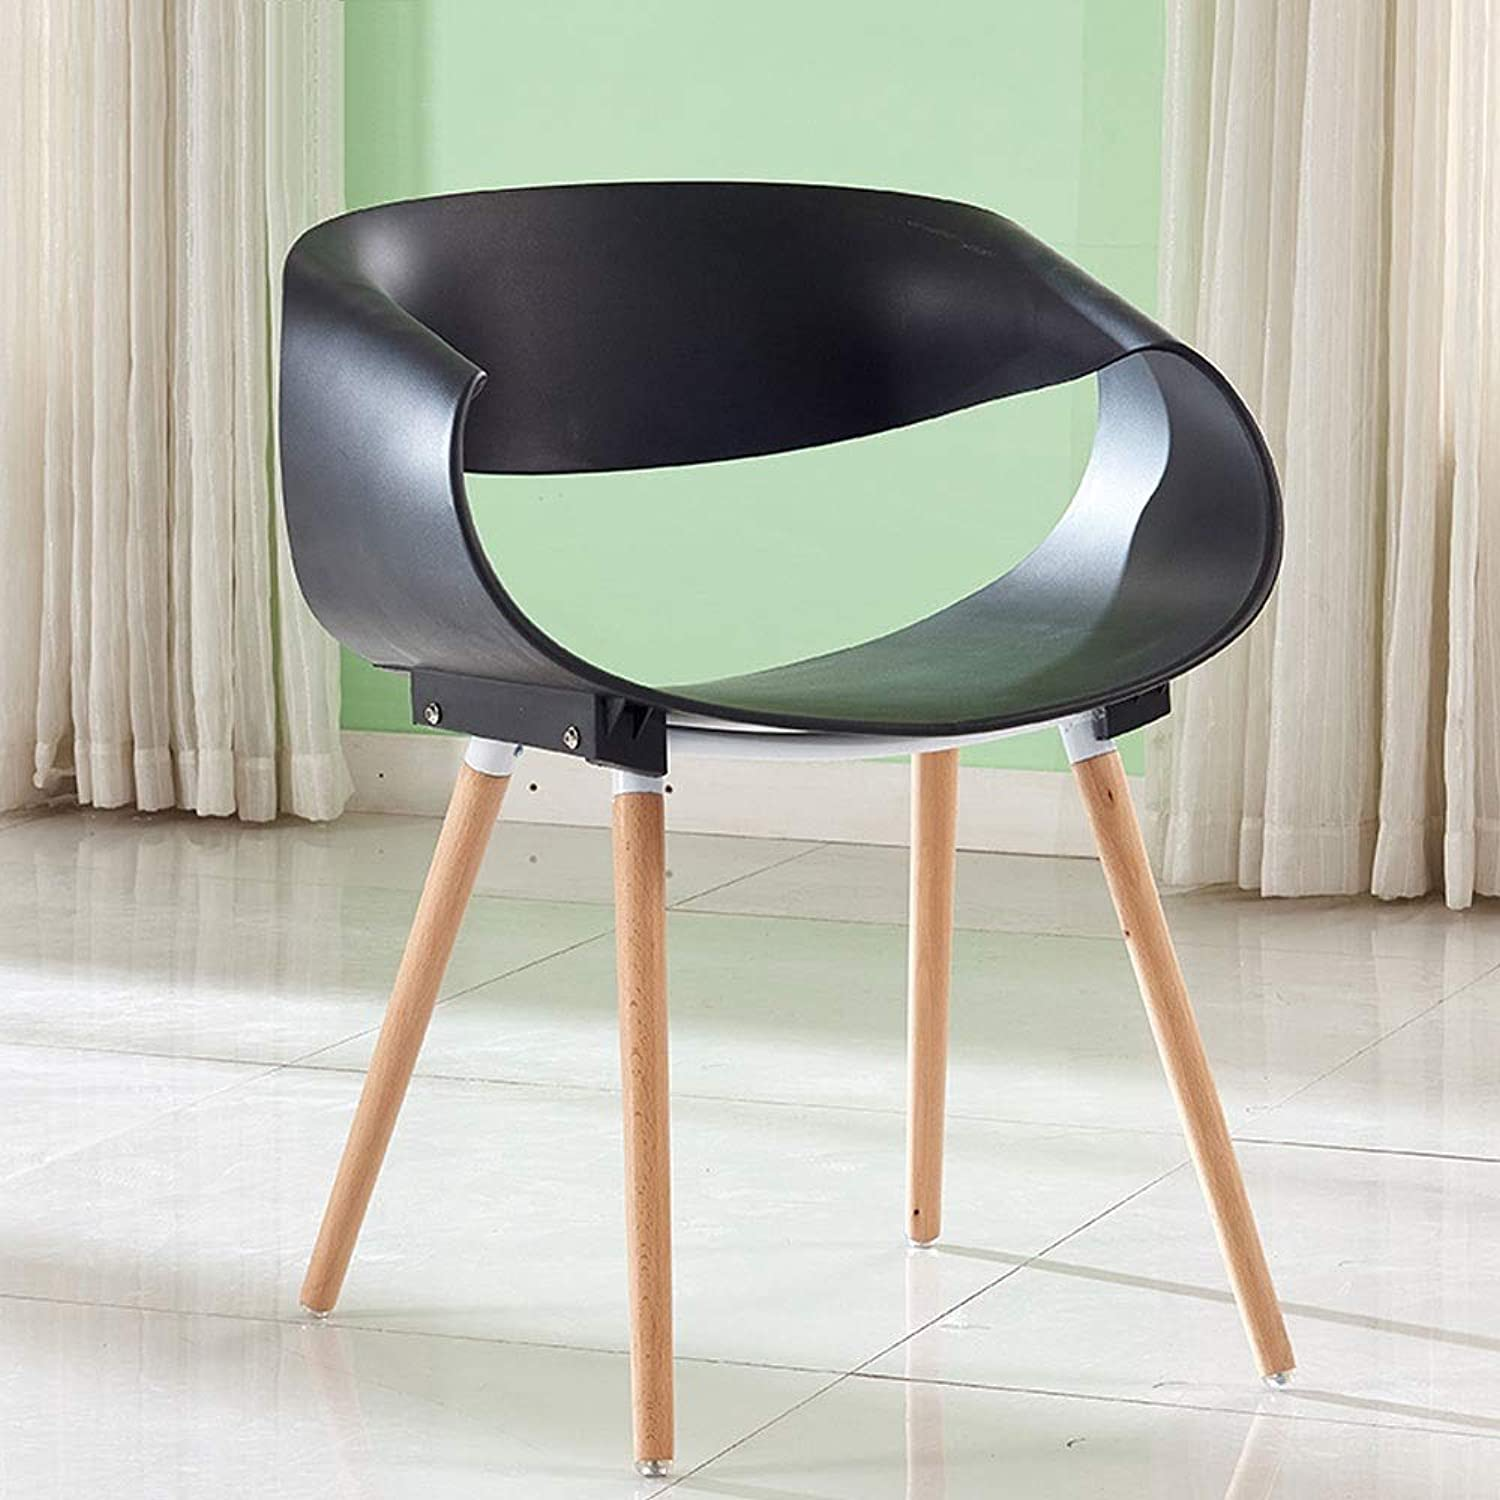 Modern Minimalist Infinite Chair Designer Plastic Chair Creative Fashion Dining Chair Office Conference Chair Leisure Discussion Chair (color   Black)